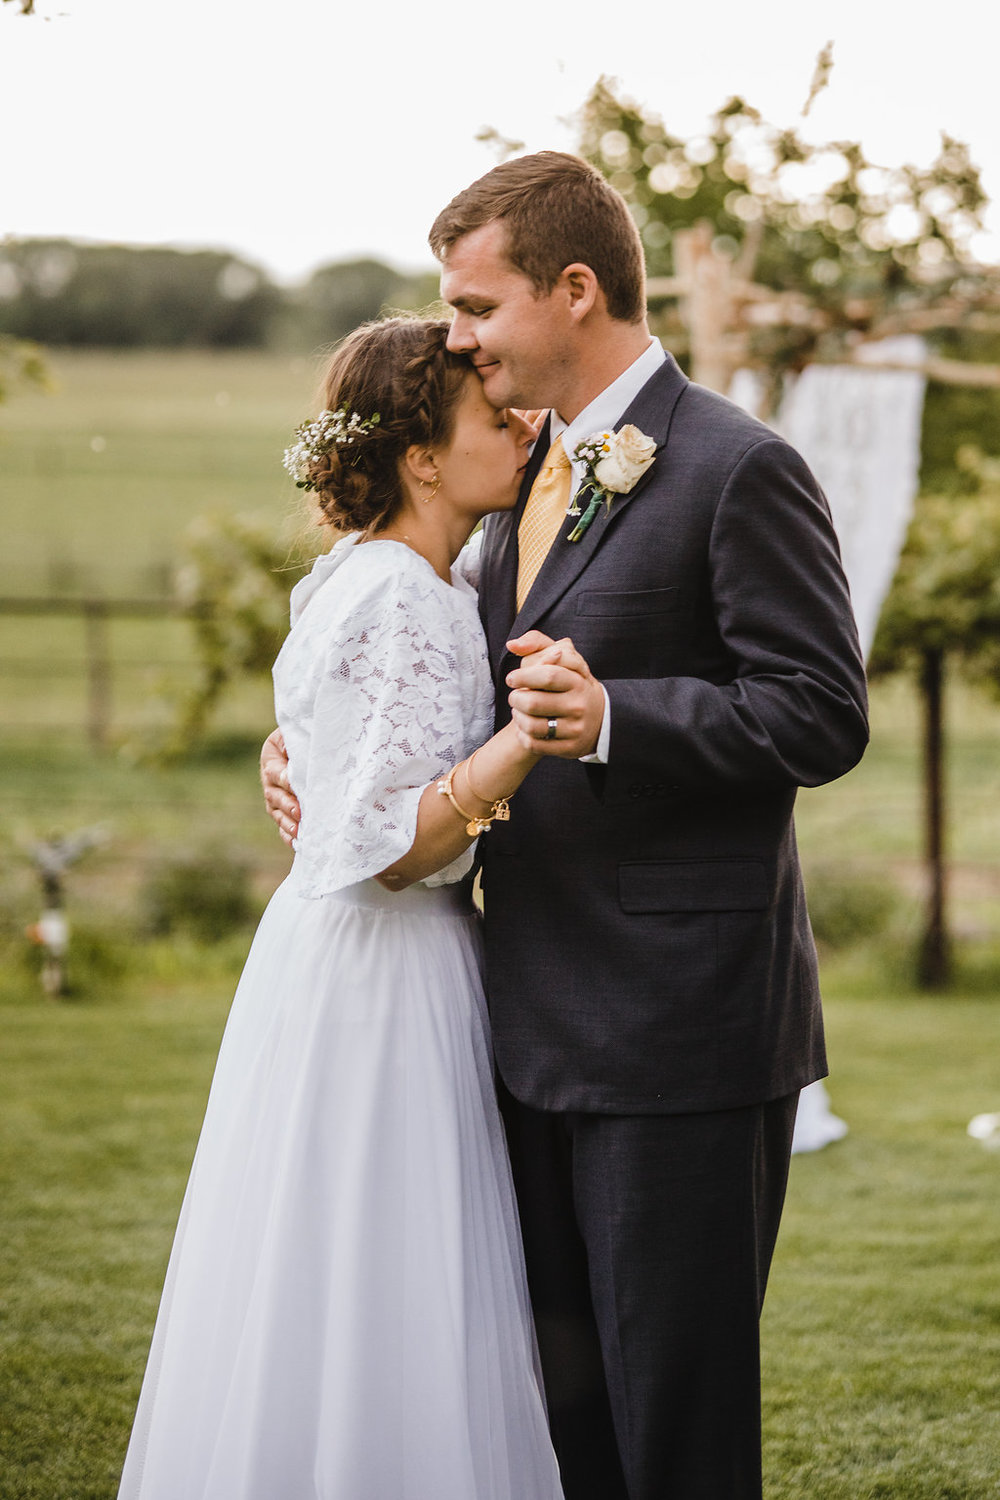 bride and groom first dance at their reception brigham city utah wedding photographer professional wedding photos calli richards